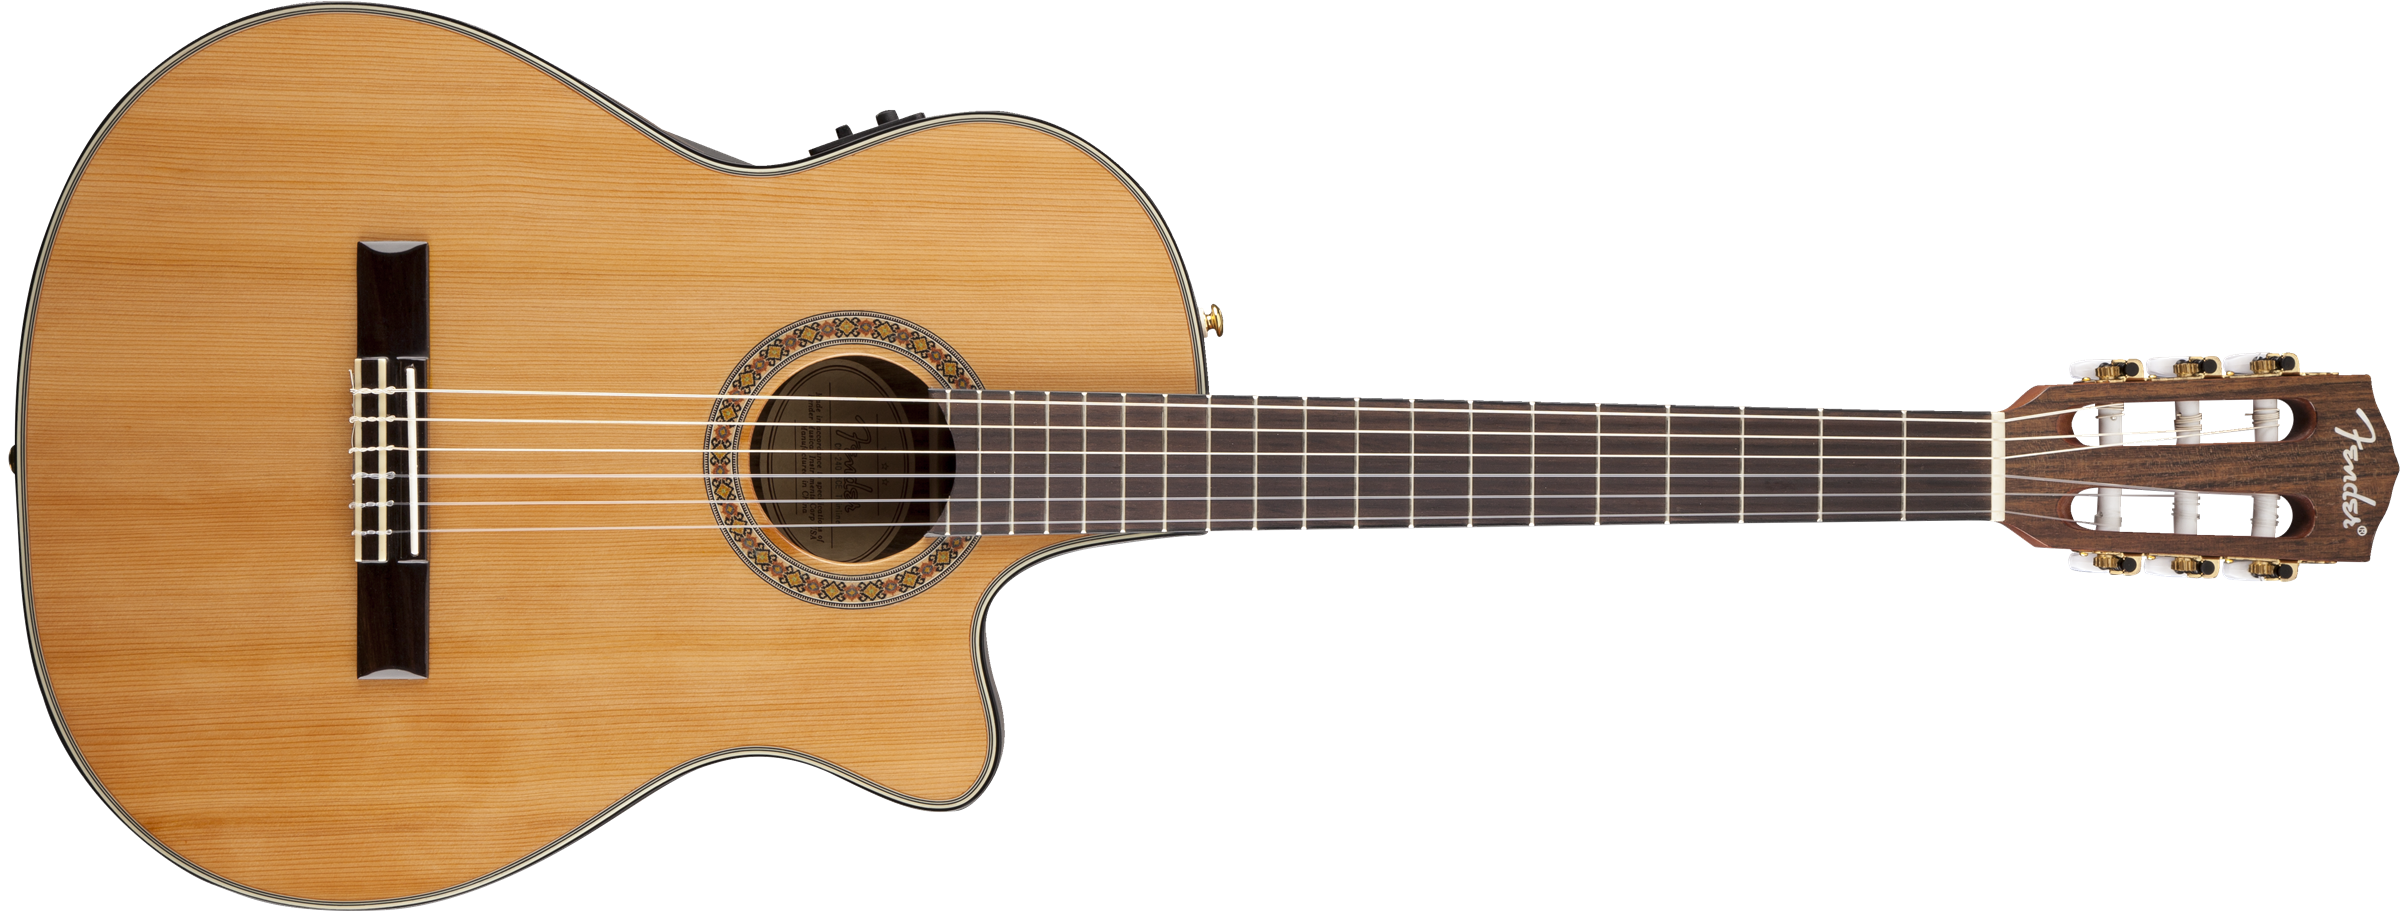 Cn 240sce Thinline Classical Solid Top Classical Body Acoustic Guitars Fender Acoustic Guitar Acoustic Bass Guitar Guitar